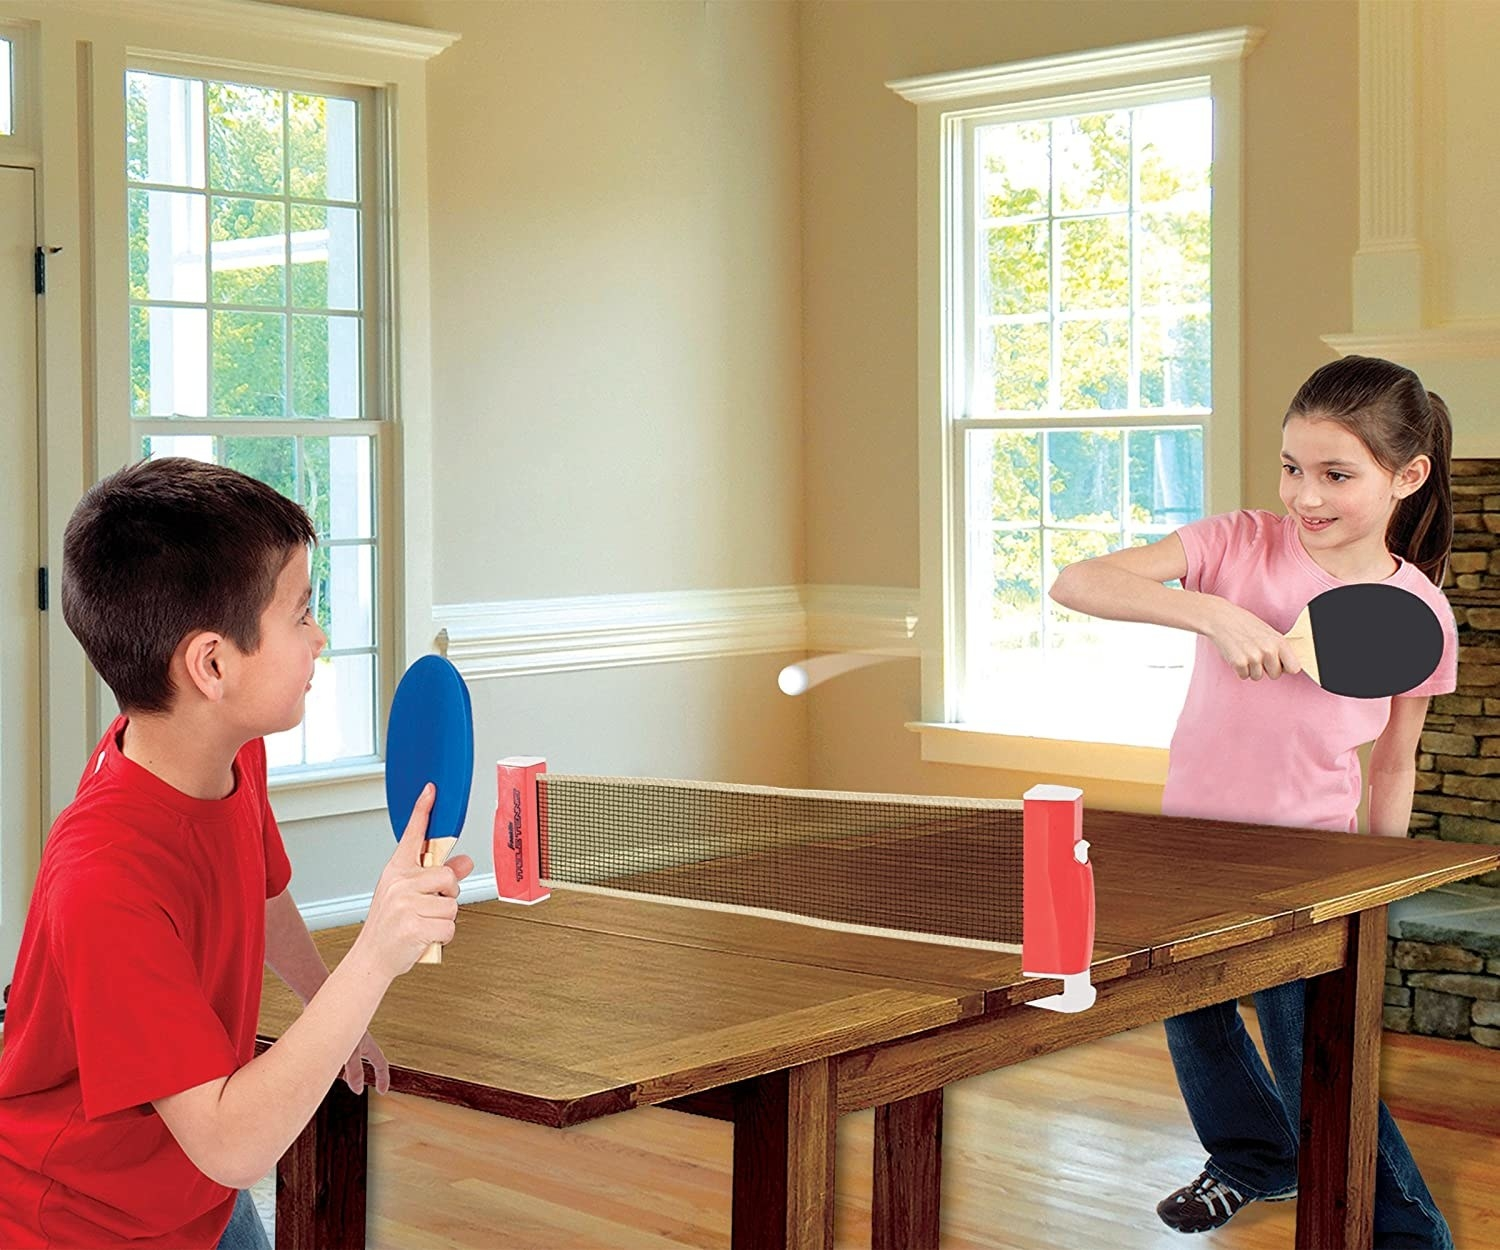 Kids playing ping pong with an attached net at a dining room table